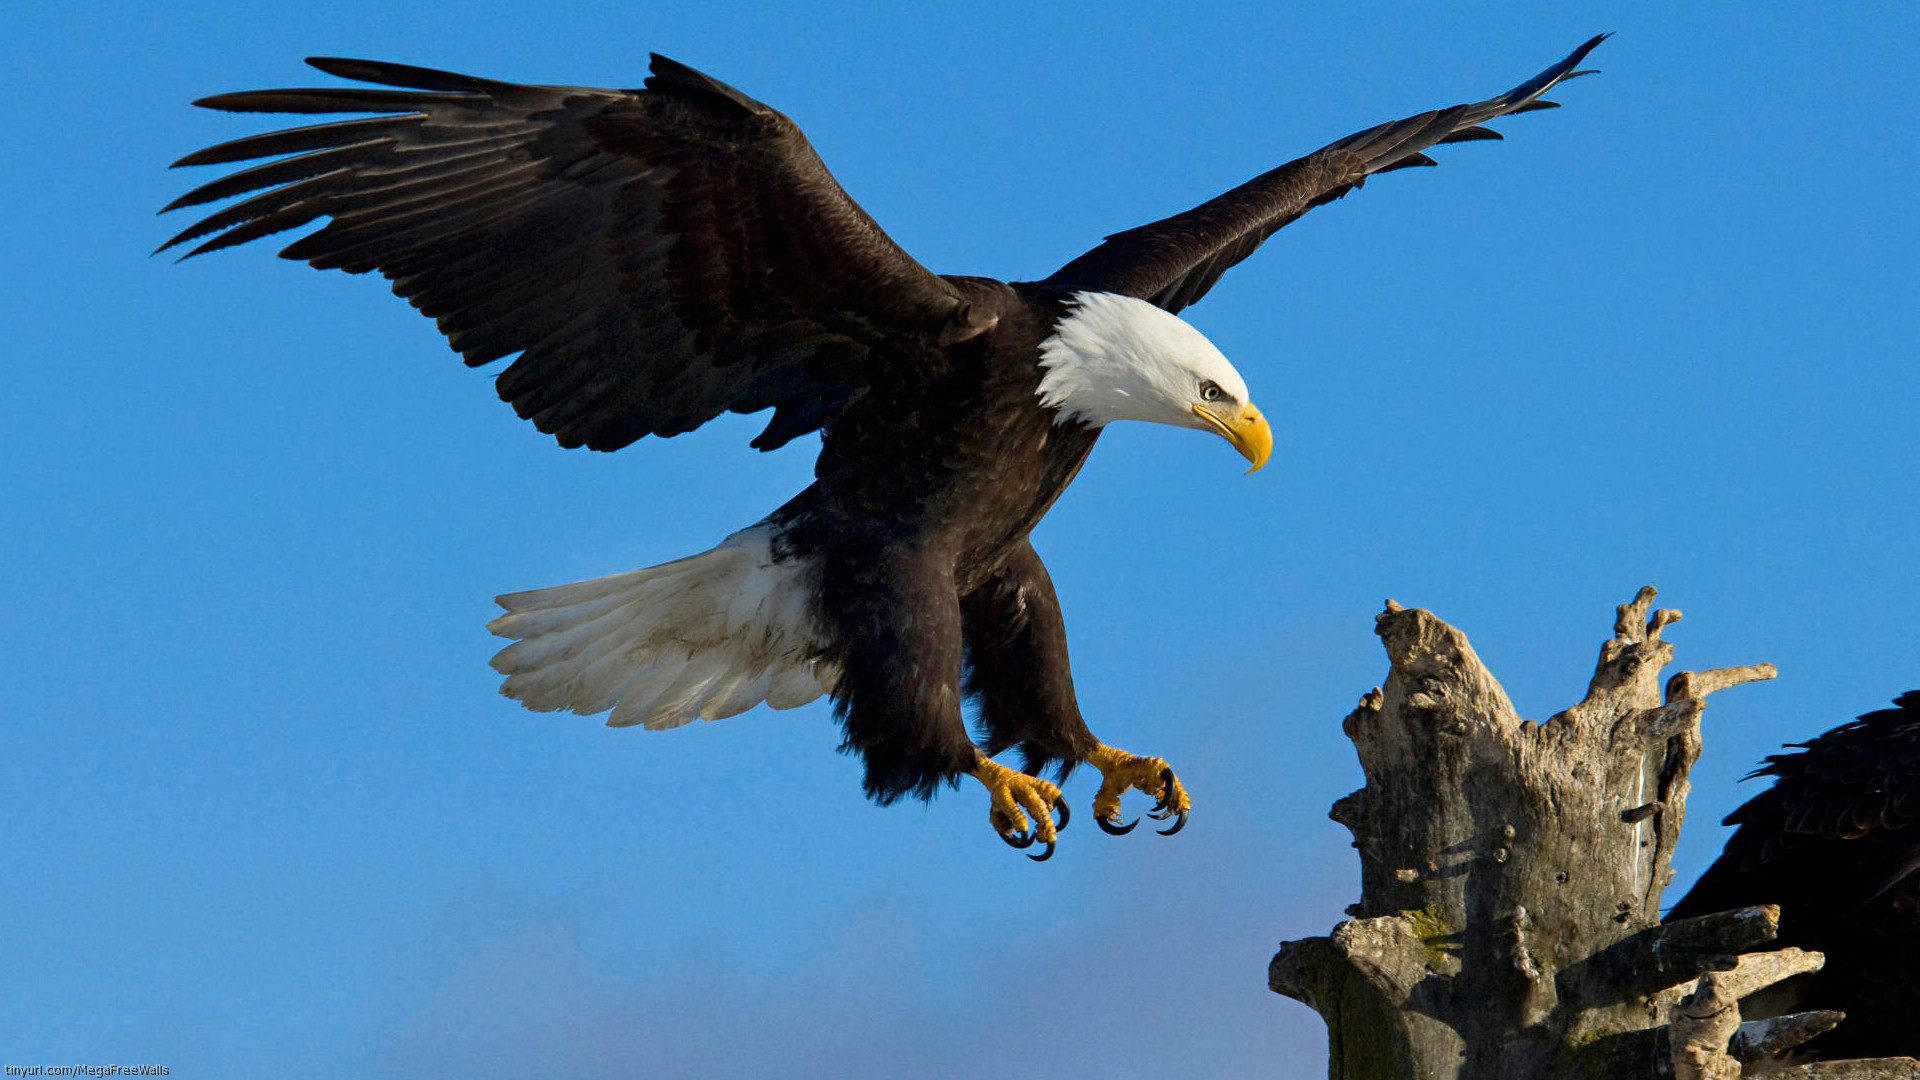 … aguila-real-wallpapers-hd …